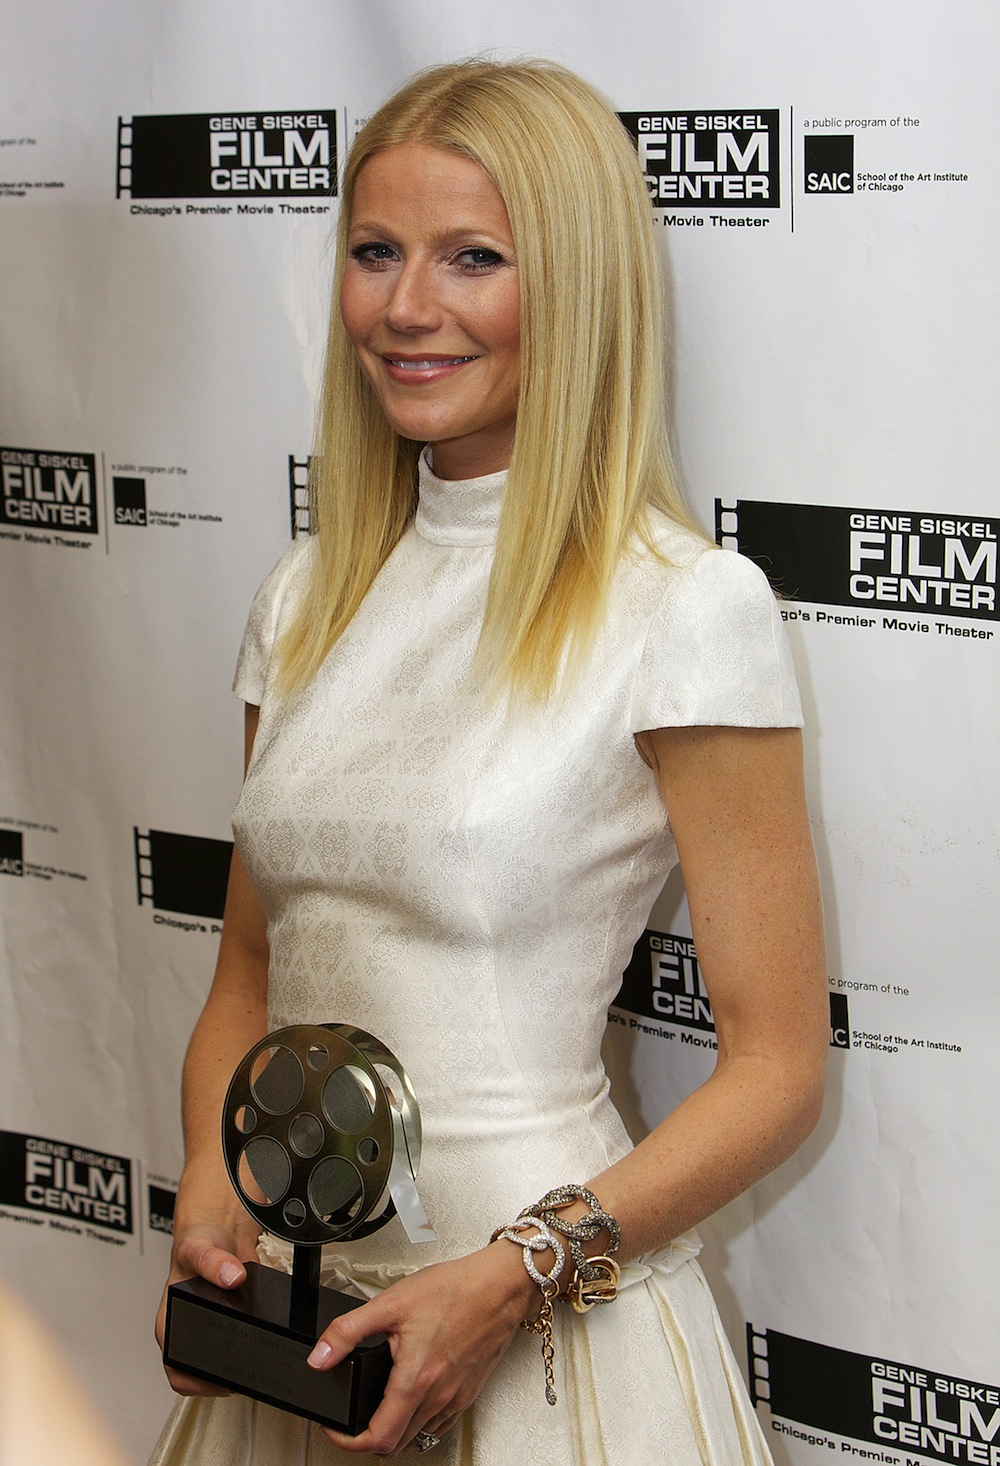 Gwyneth with her award and some Pomellato bling